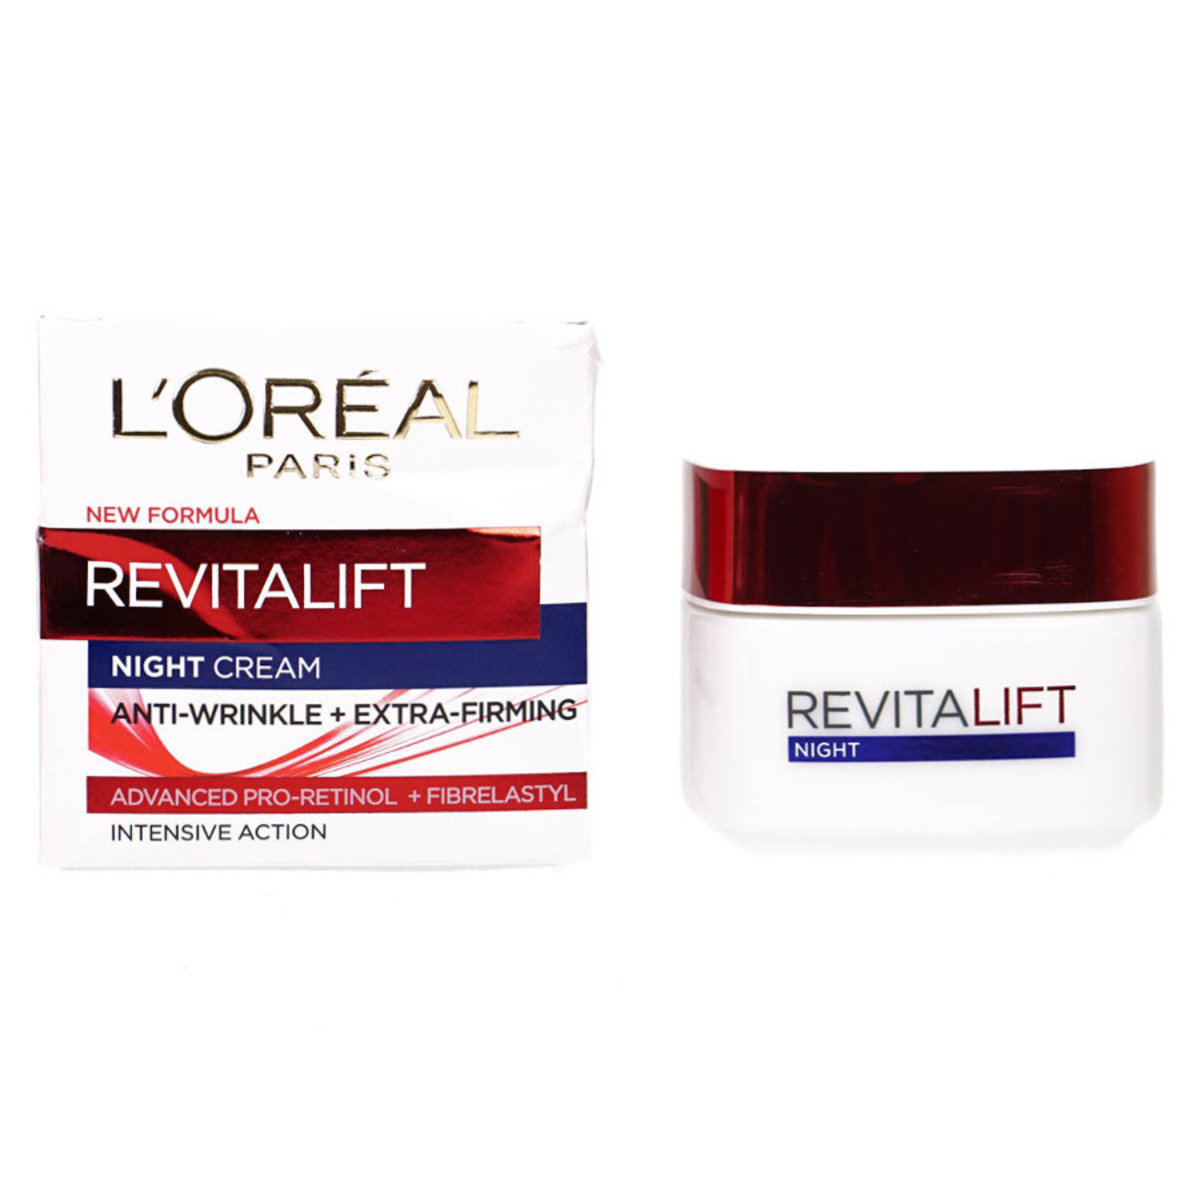 Revitalift Anti Wrinkle Firming Night Cream 50ml*old/new package randomly deliver [Parrallel Import]